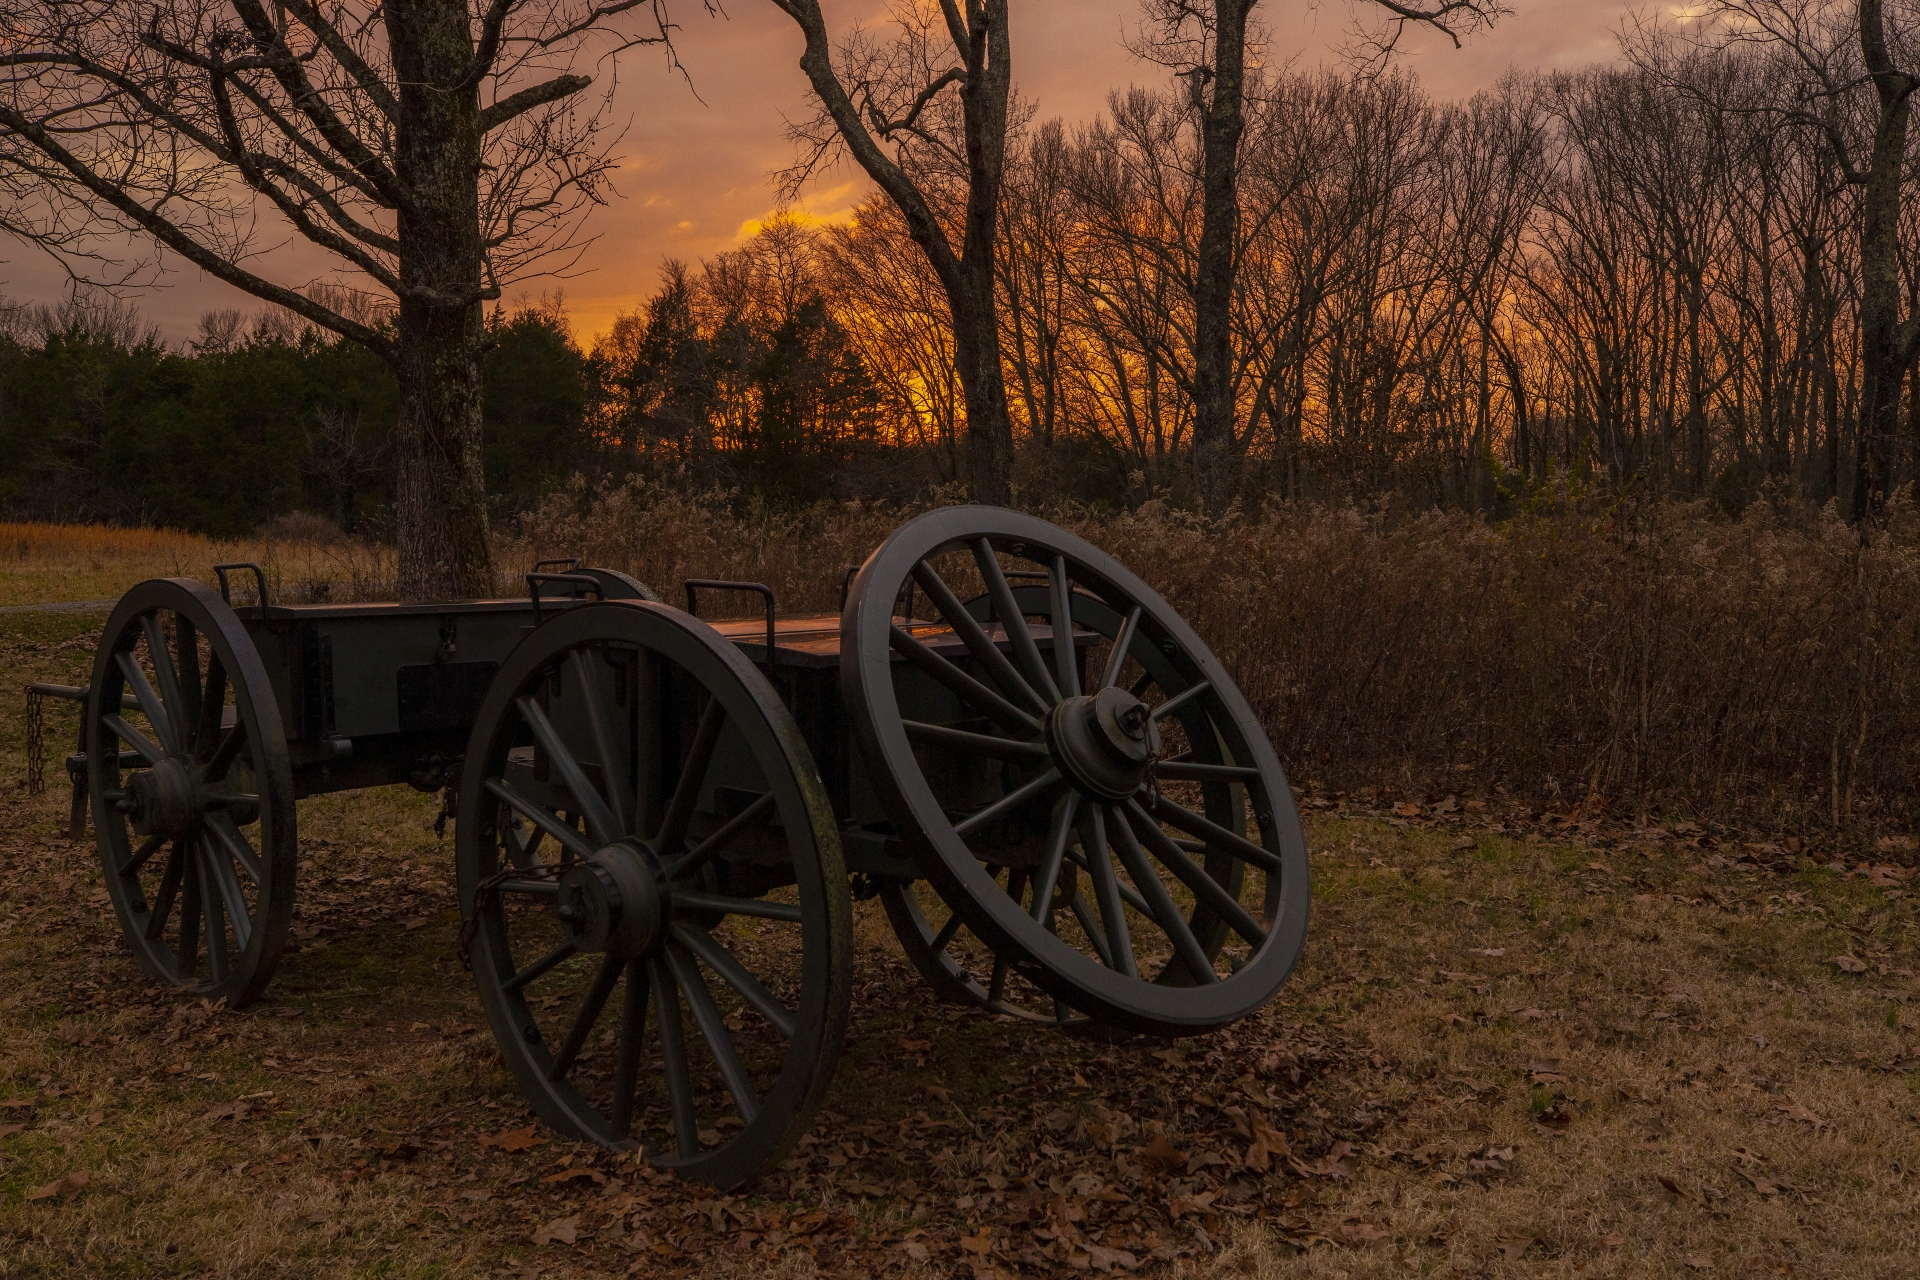 A old wagon on a battlefield at dusk